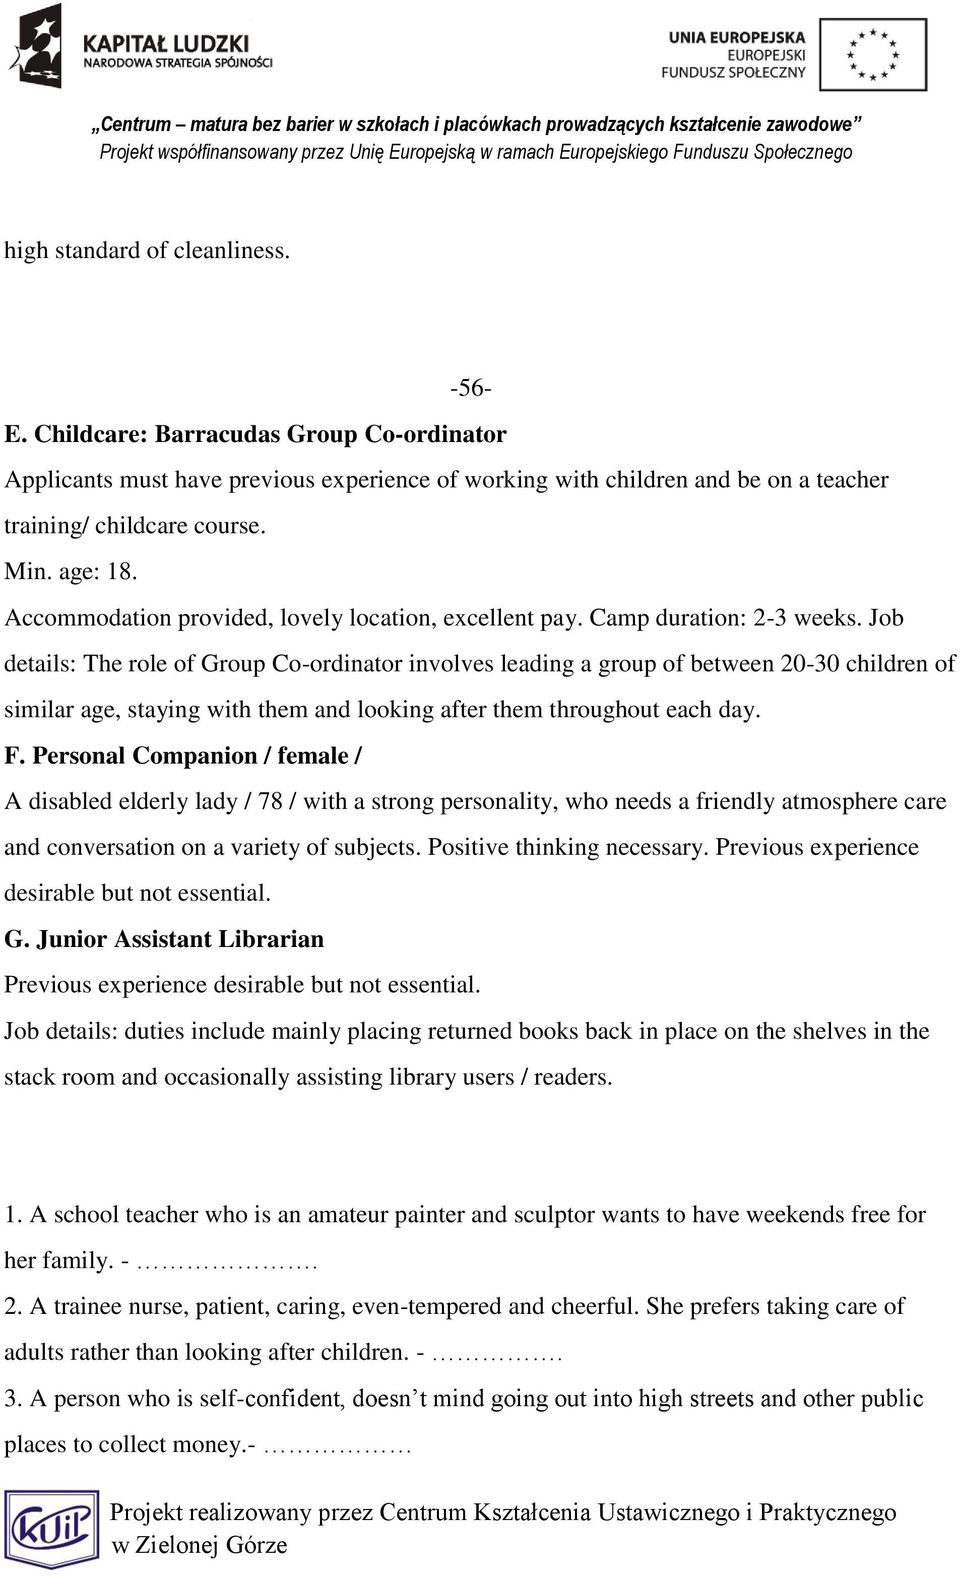 Job details: The role of Group Co-ordinator involves leading a group of between 20-30 children of similar age, staying with them and looking after them throughout each day. F.